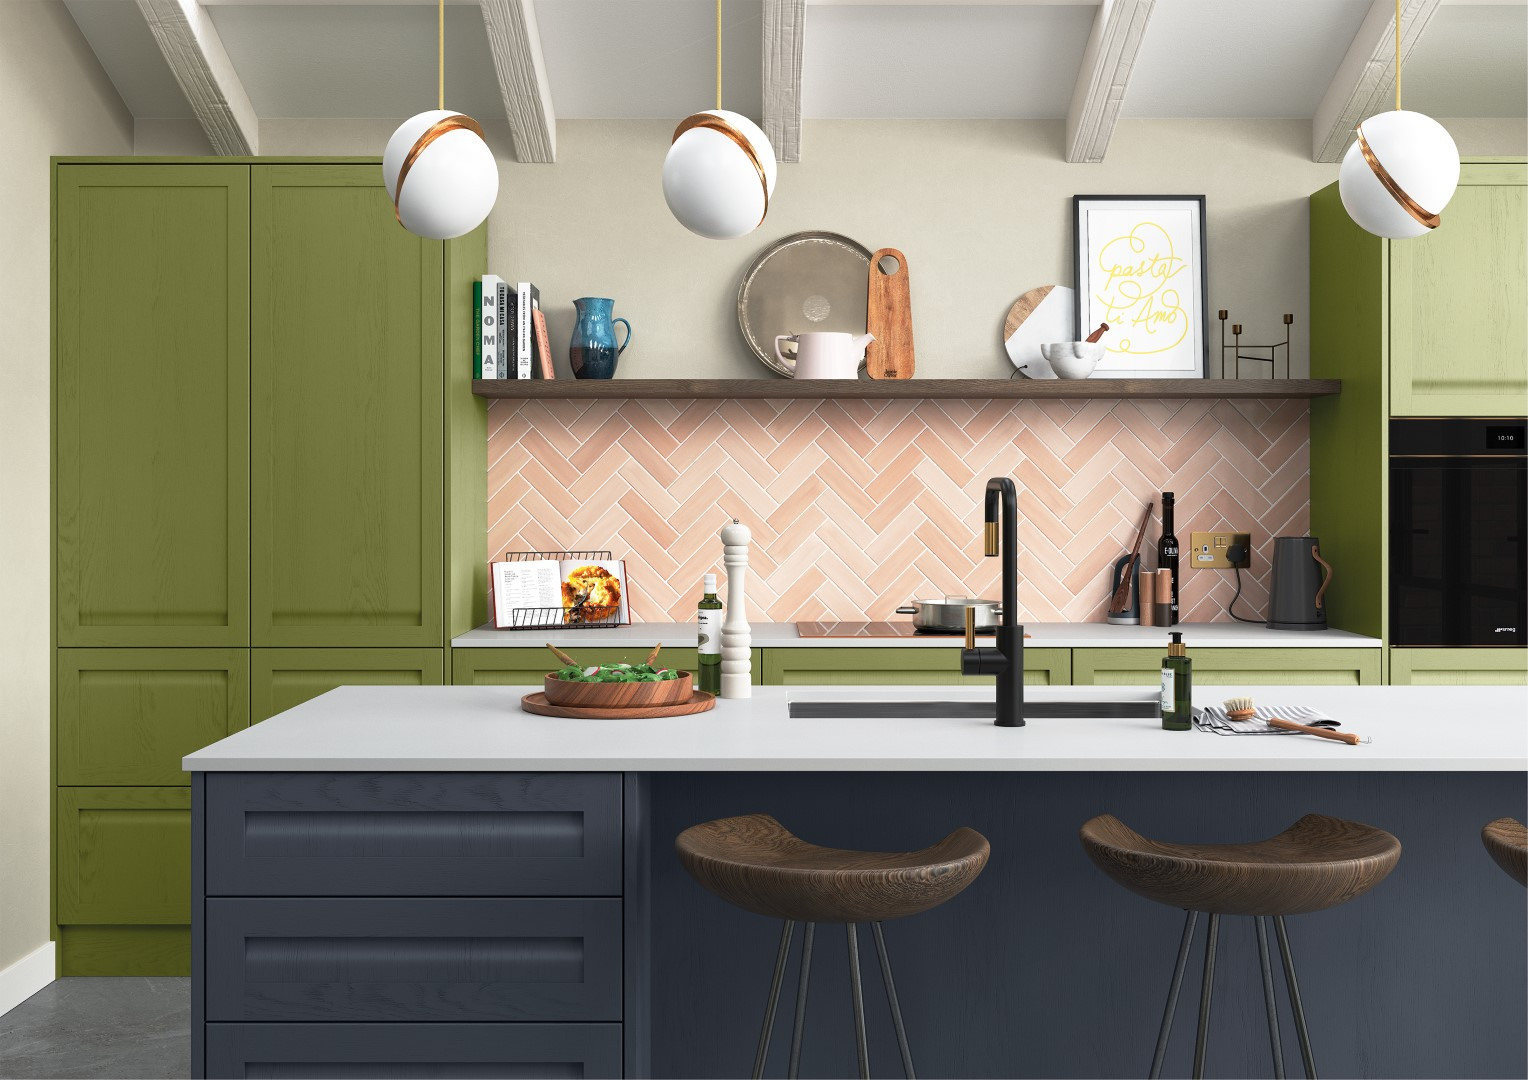 Harborne Slate Blue, Stone and Citrus Green - Kitchen Design - Alan Kelly Kitchens - Waterford - 2